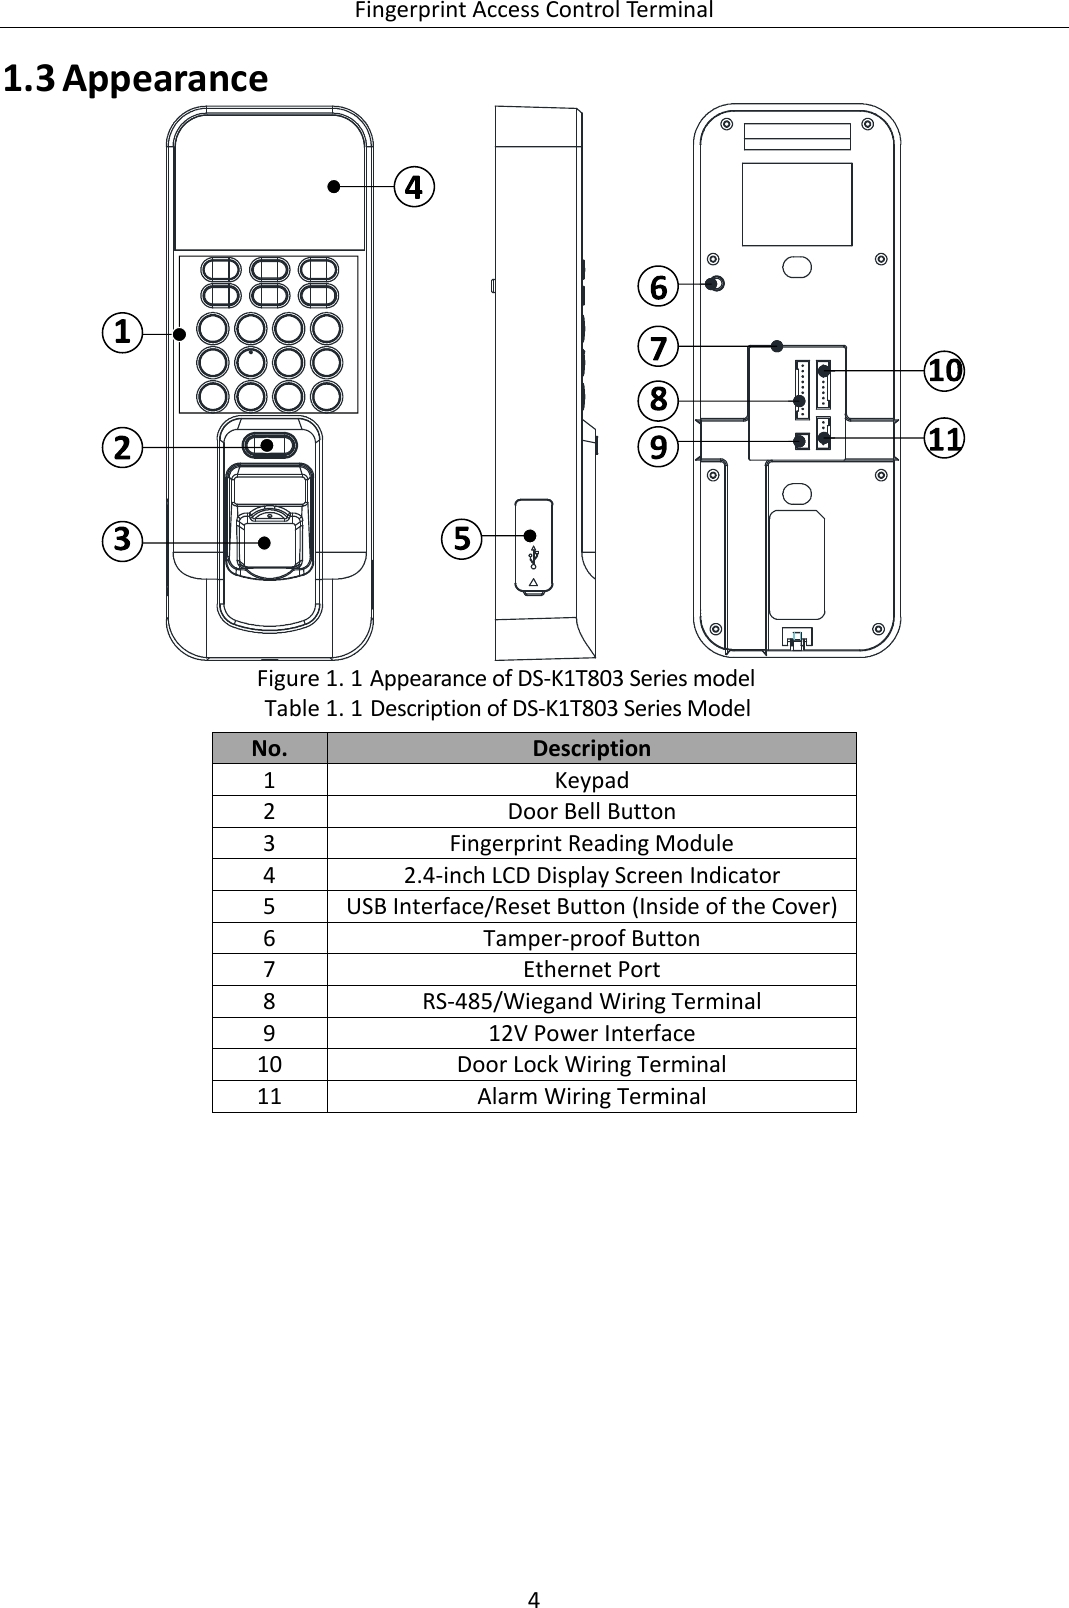 hikvision access control wiring diagram